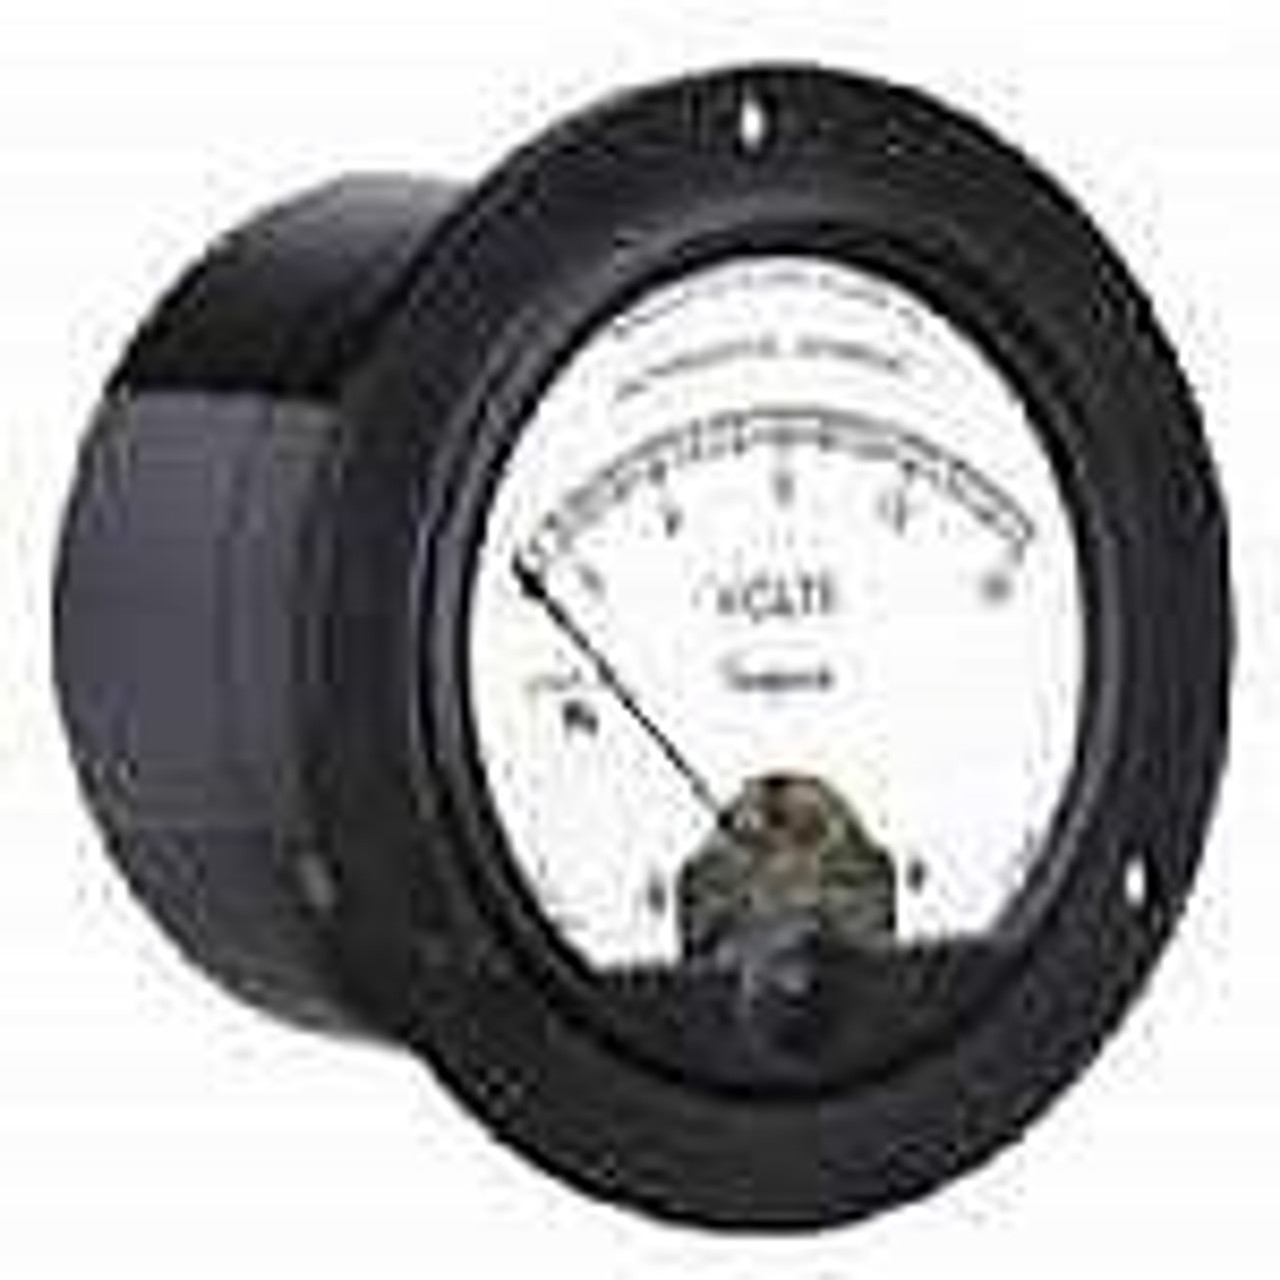 Simpson- 00005 Model - 25A Style - Round 0-1DCA 3.5 UL RND